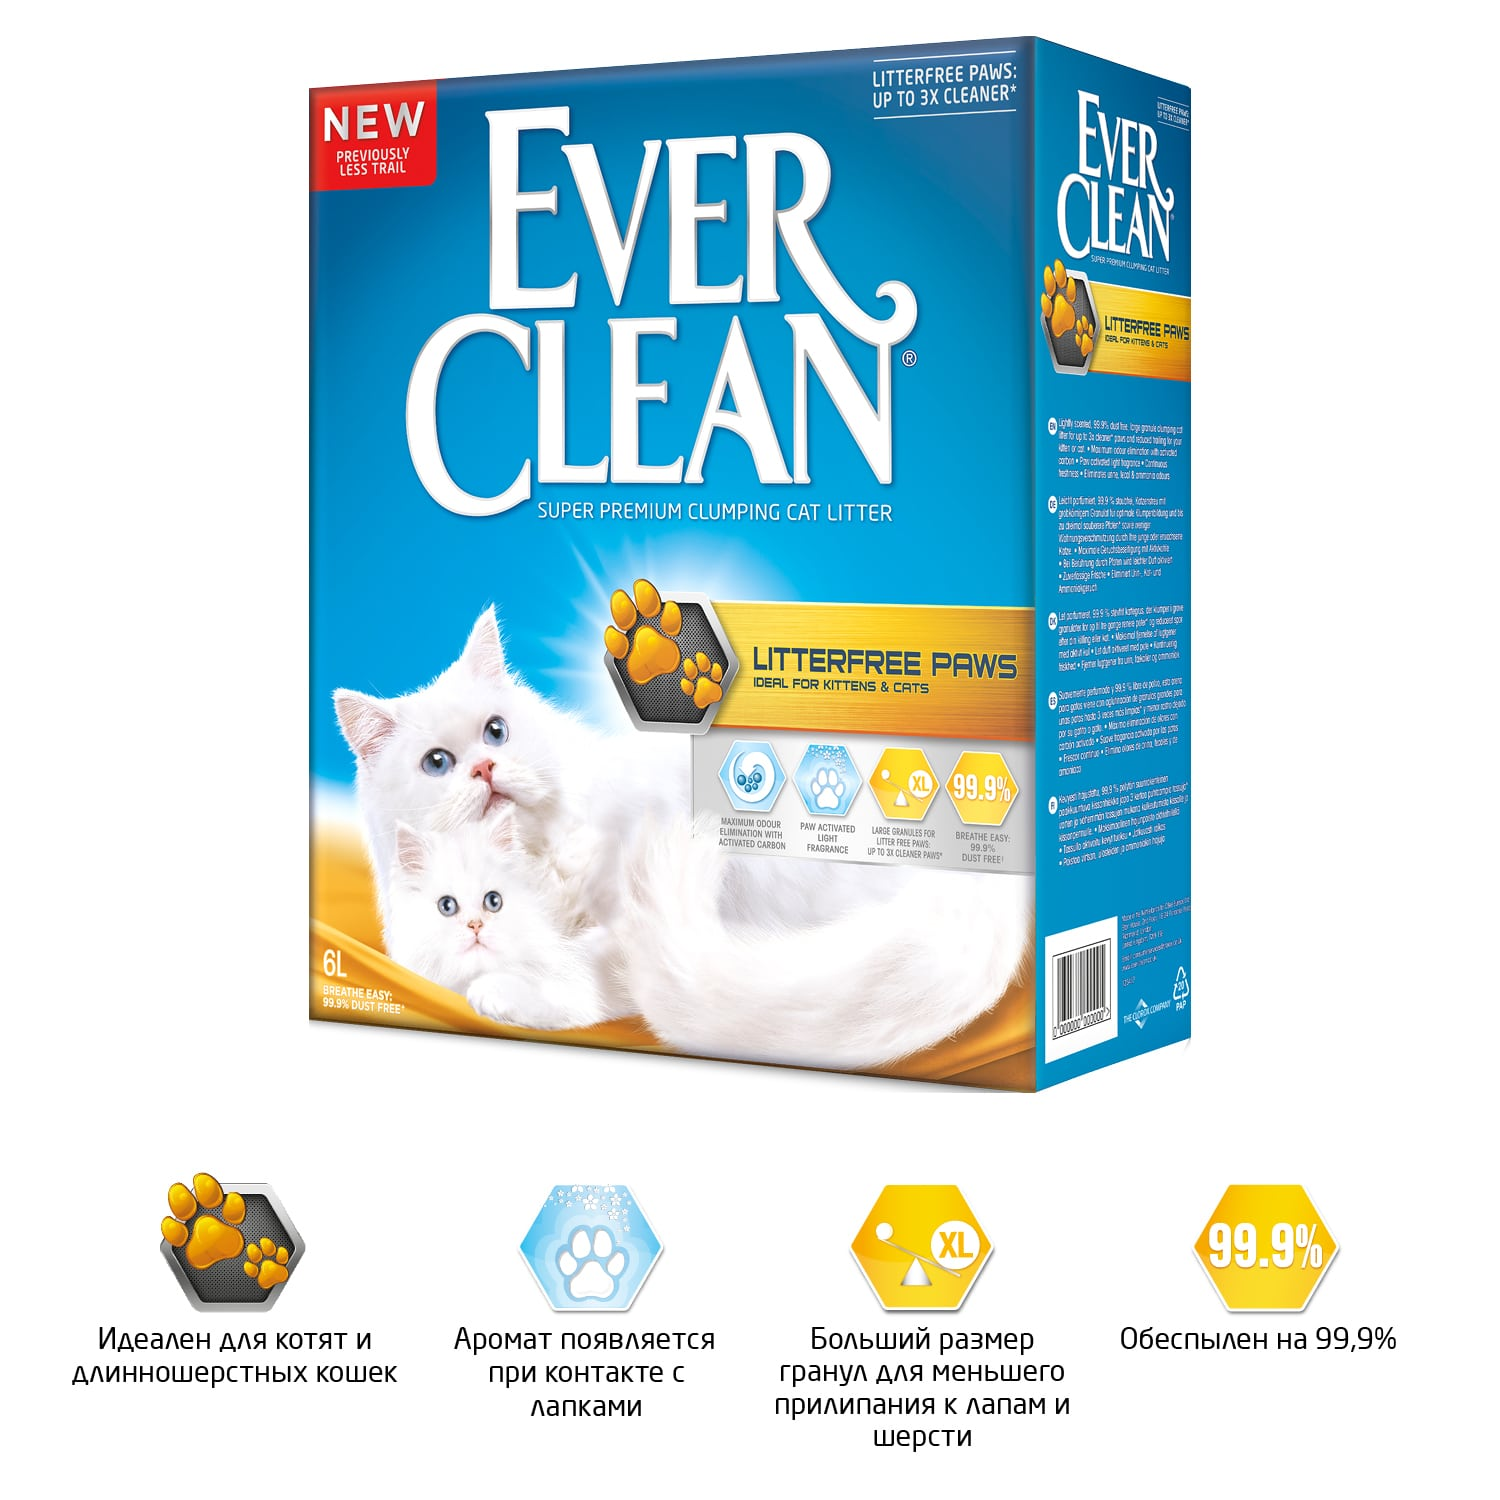 Ever Clean LitterFree Paws, 10 л